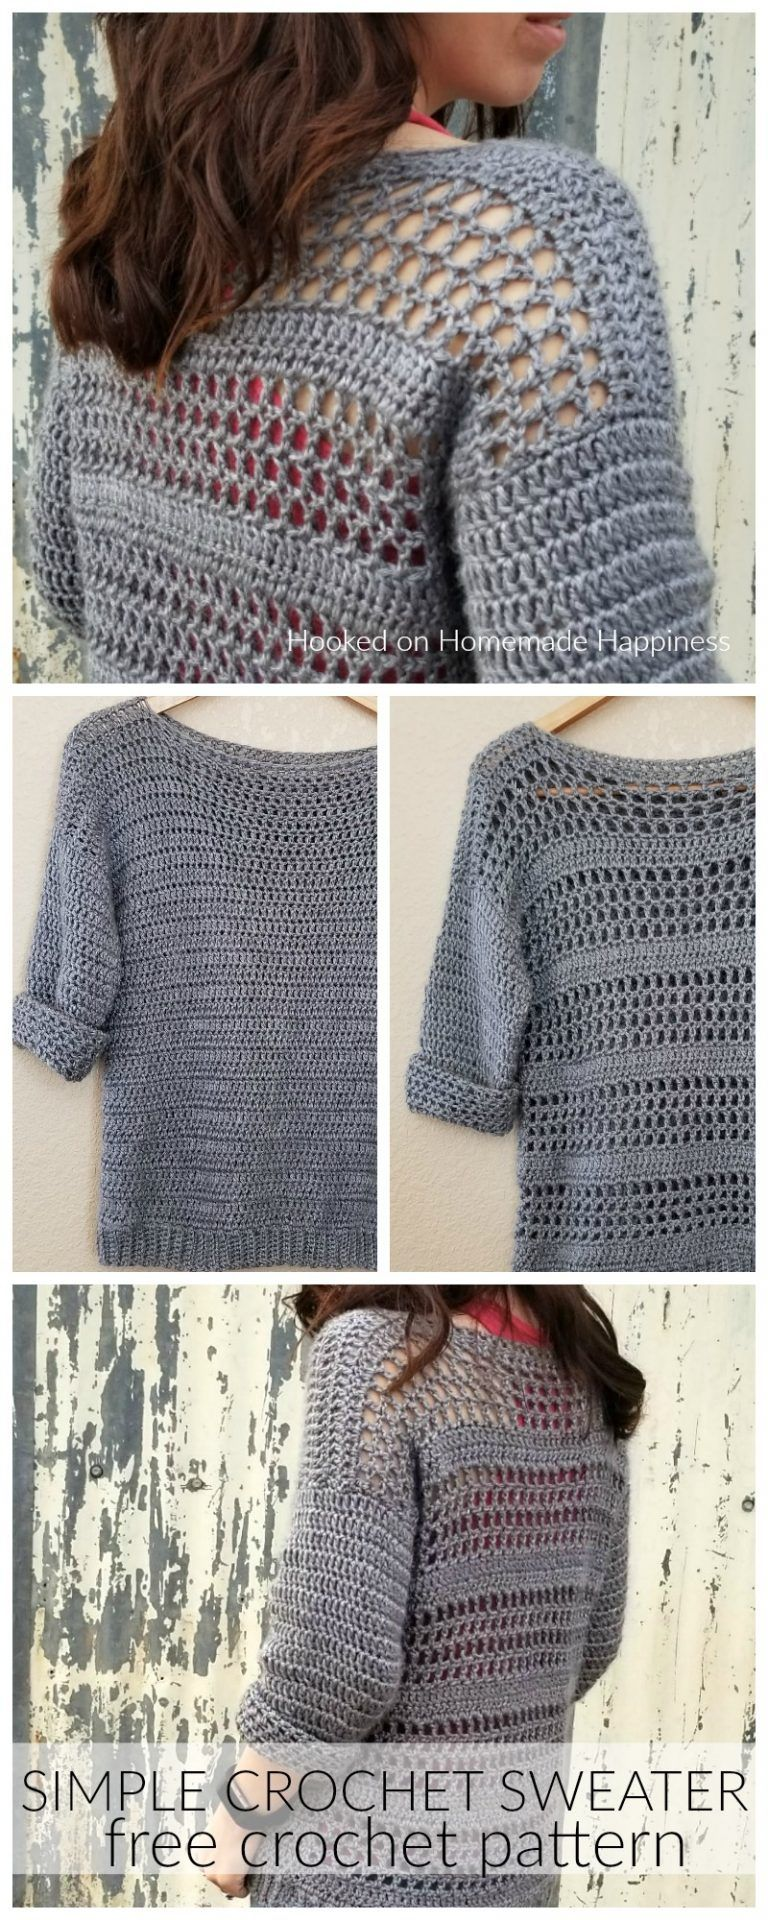 665344a09 Simple Crochet Sweater Pattern - Making your own sweaters is easier than  you might think! Just start with 2 rectangles and add some sleeves!